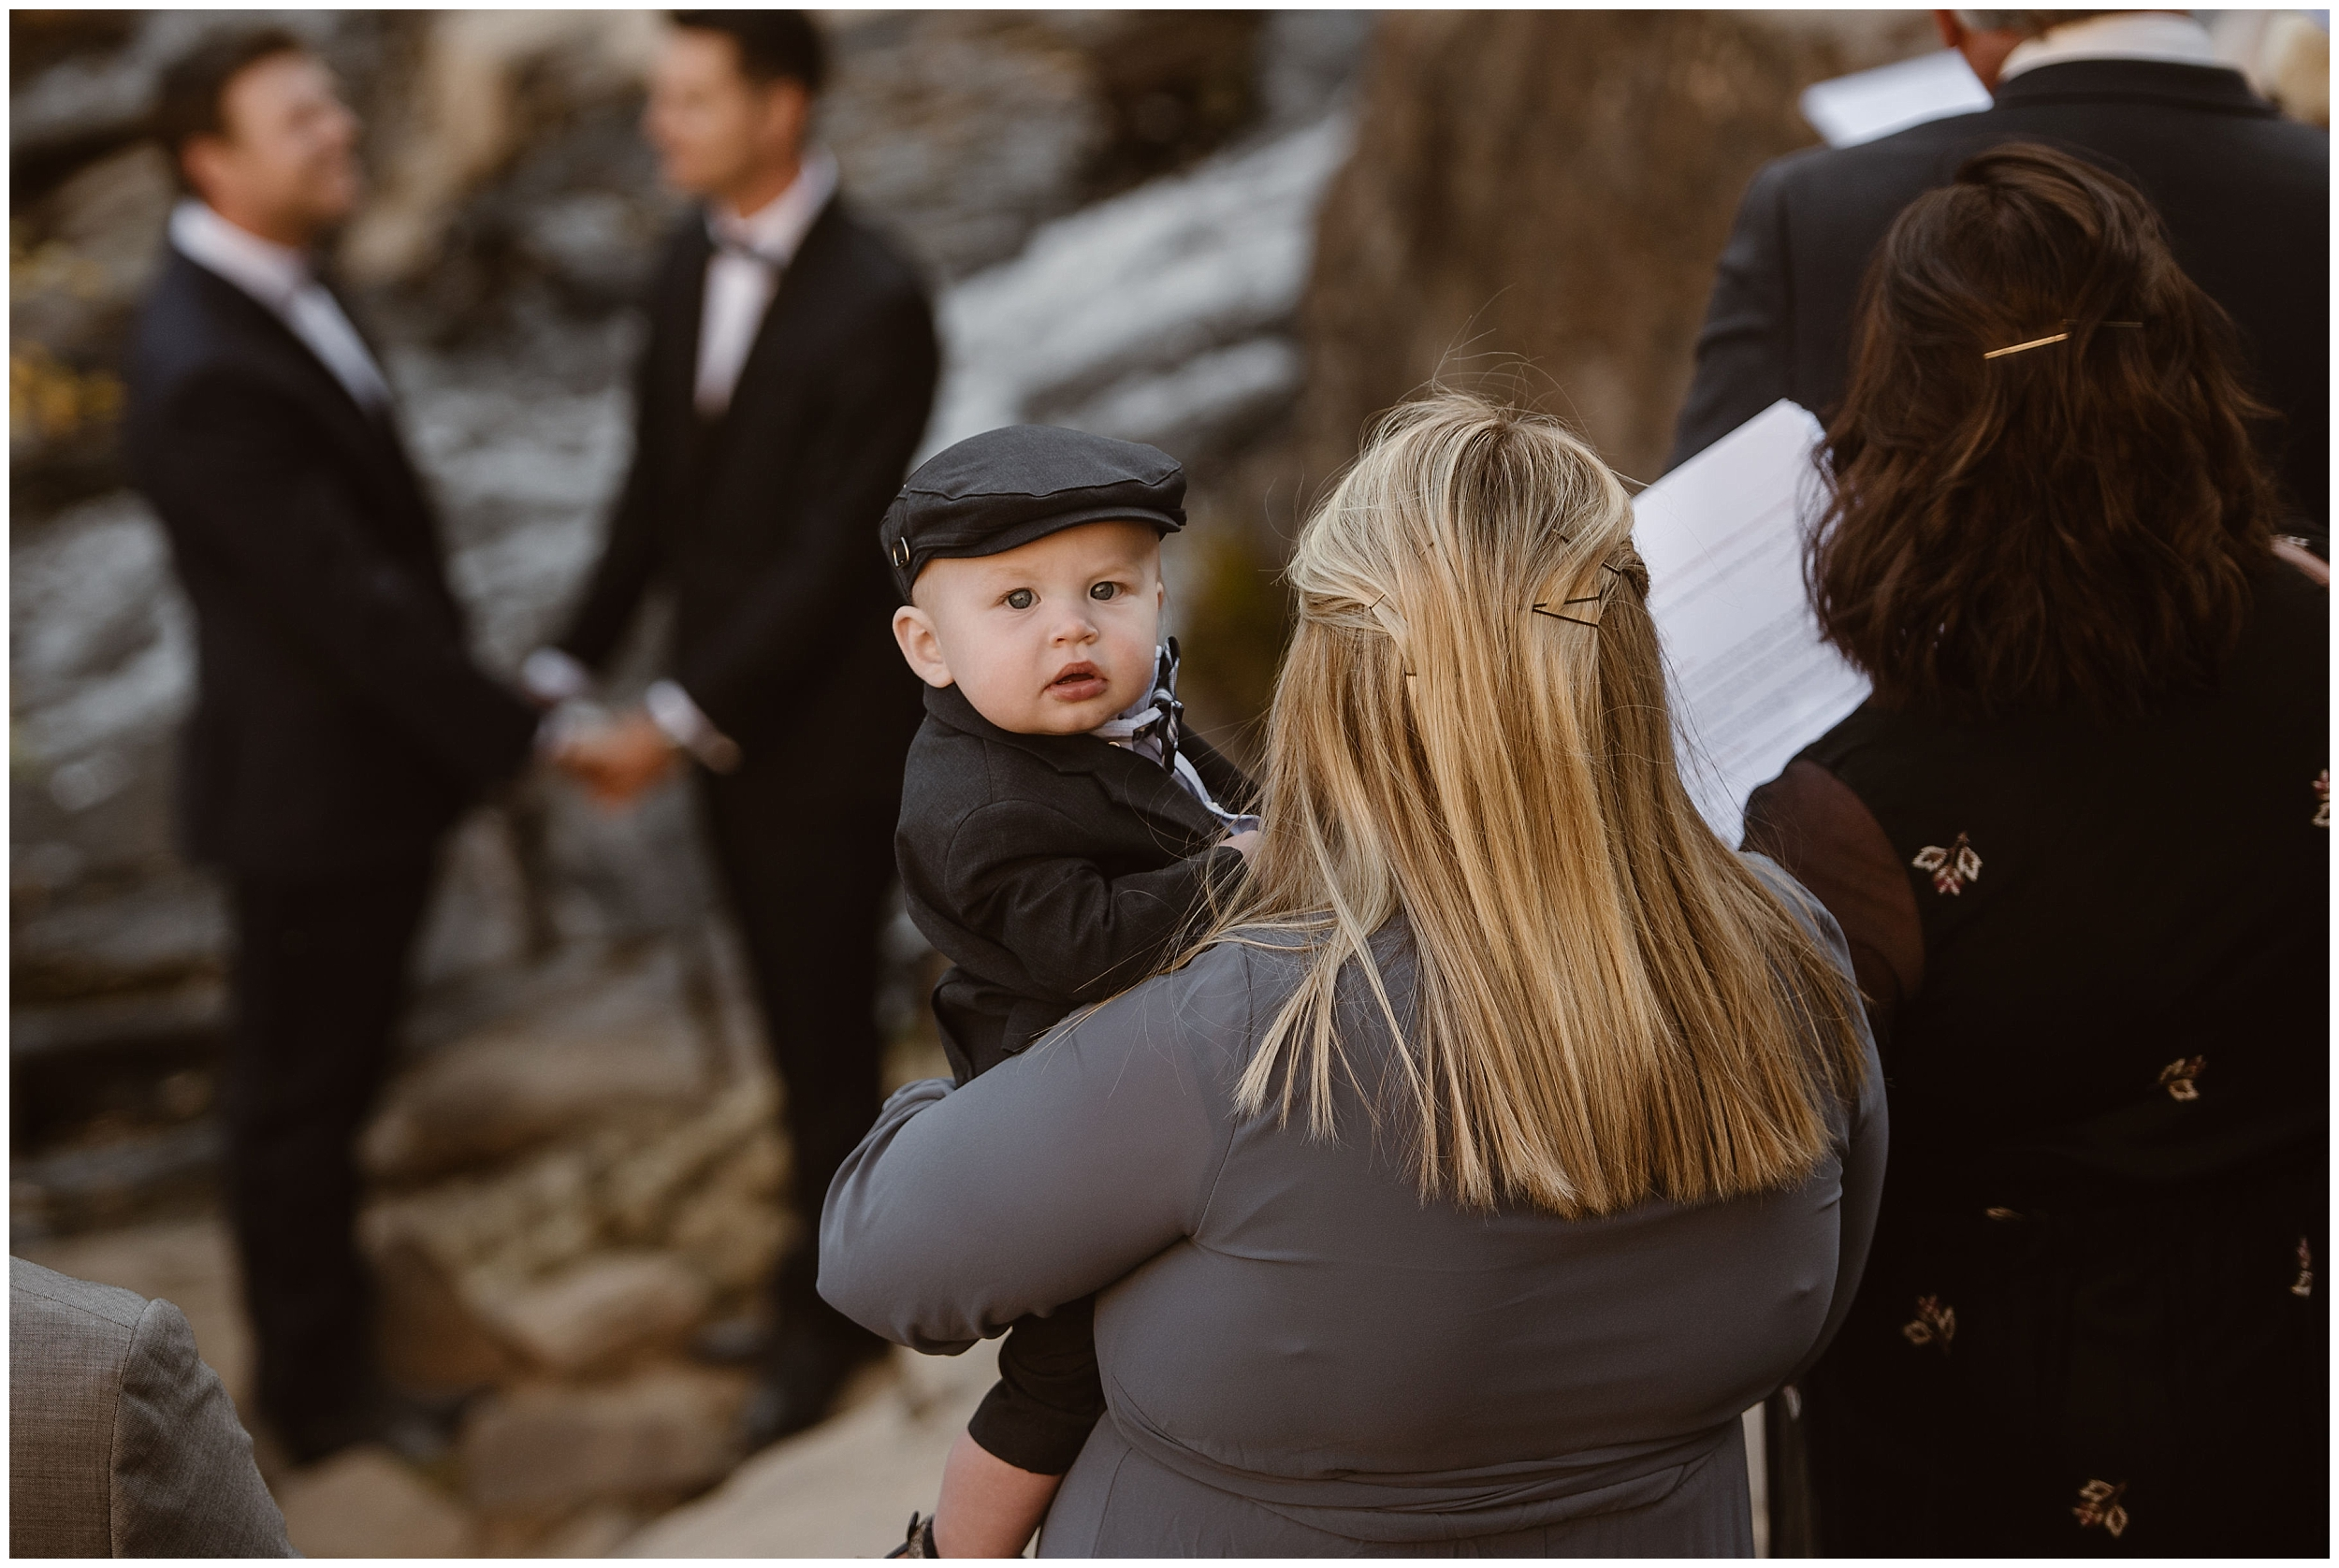 The tiniest guest at Brian and Ernie's elopement peeks up over his mother's shoulder. Their 9-month-old godson , wearing a pageboy hat, looks into the camera held by Adventure Instead, an elopement wedding photographer who captured Brian and Ernie's Colorado mountain wedding.